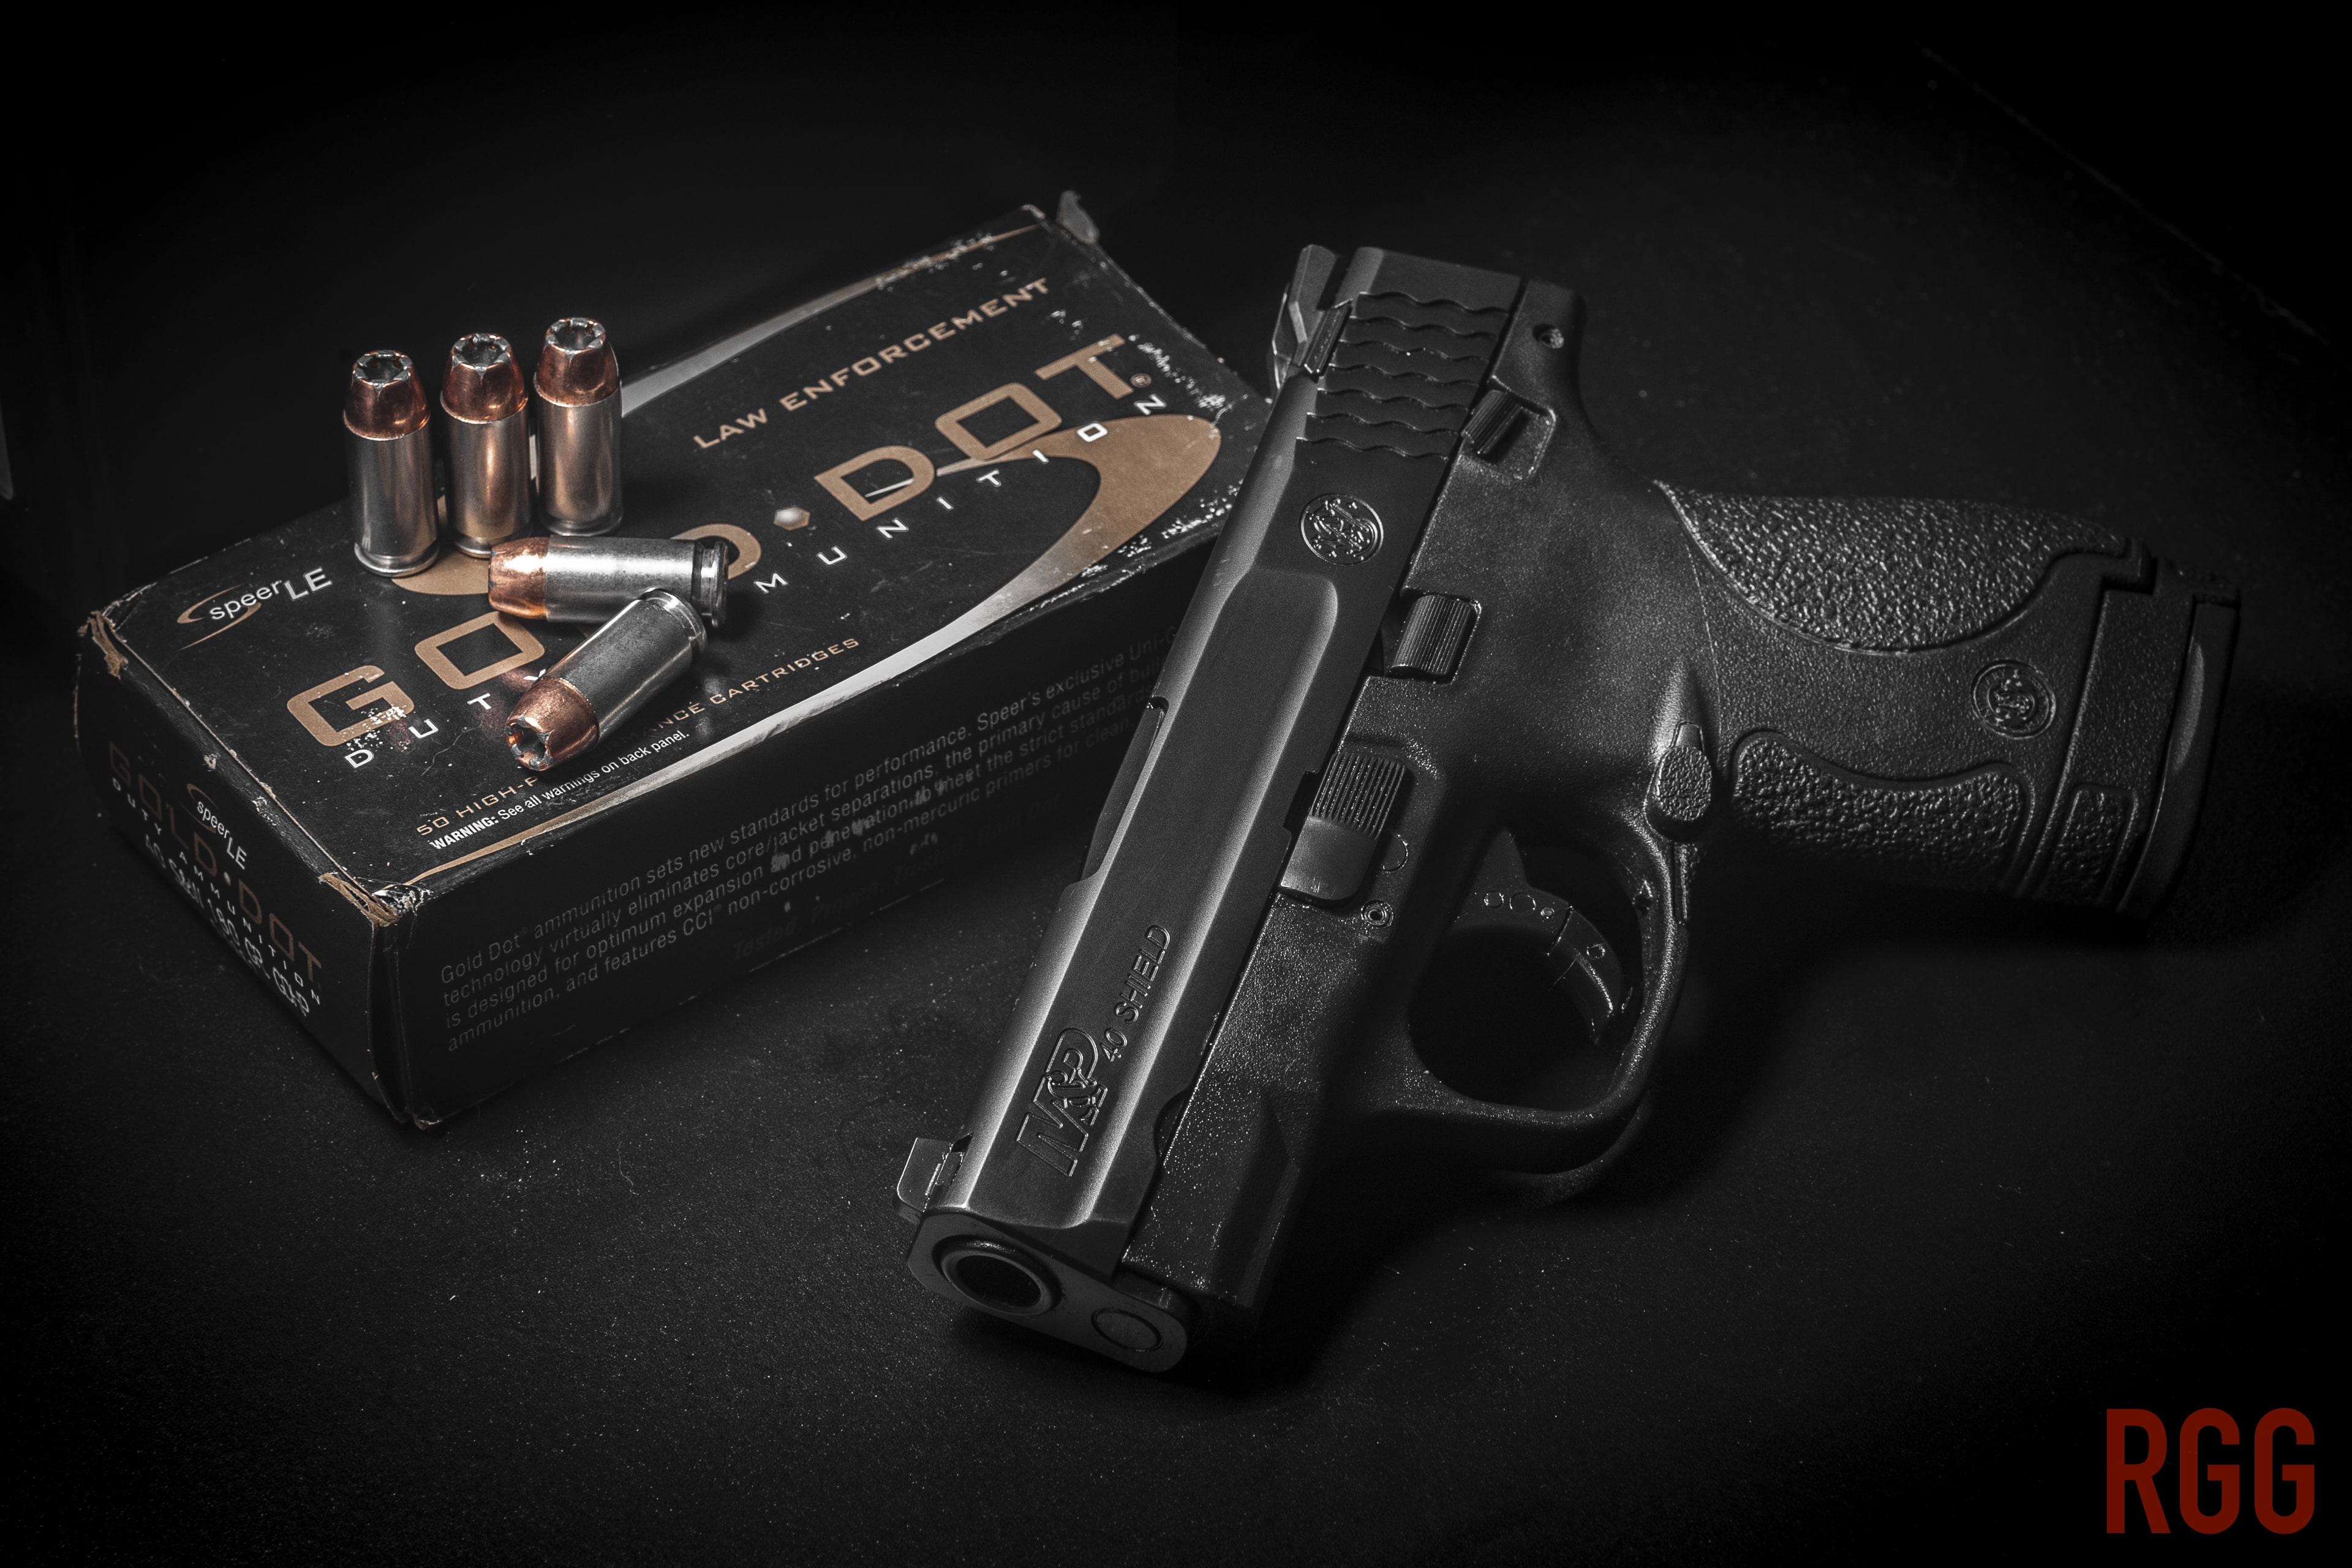 A Smith & Wesson M&P 40 Shield Pistol and Speer LE 180 grain Gold Dot Hollow Point .40 S&W ammo.